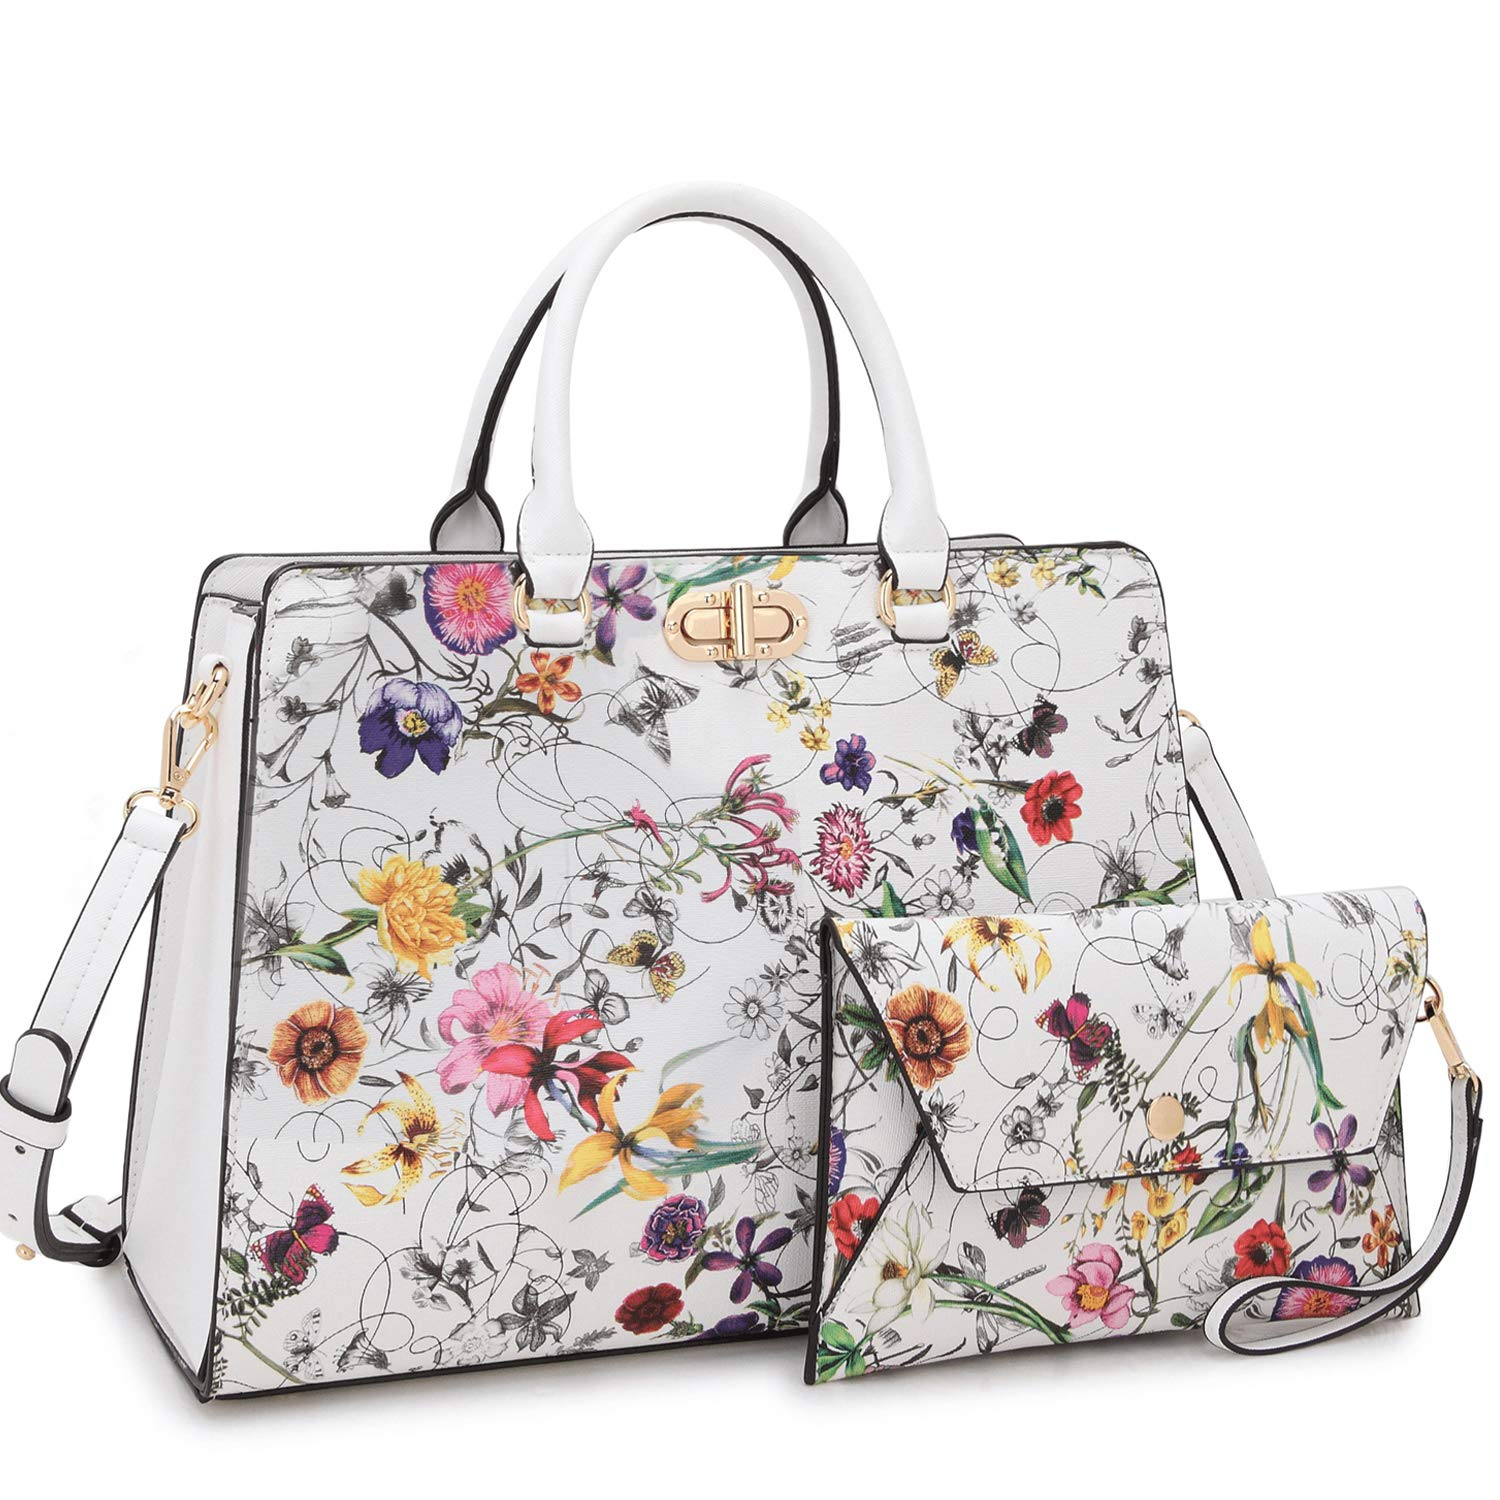 Women's Fashion Handbags Tote Purses Shoulder Bags Top Handle Satchel Purse Set 2pcs 01- White Flower